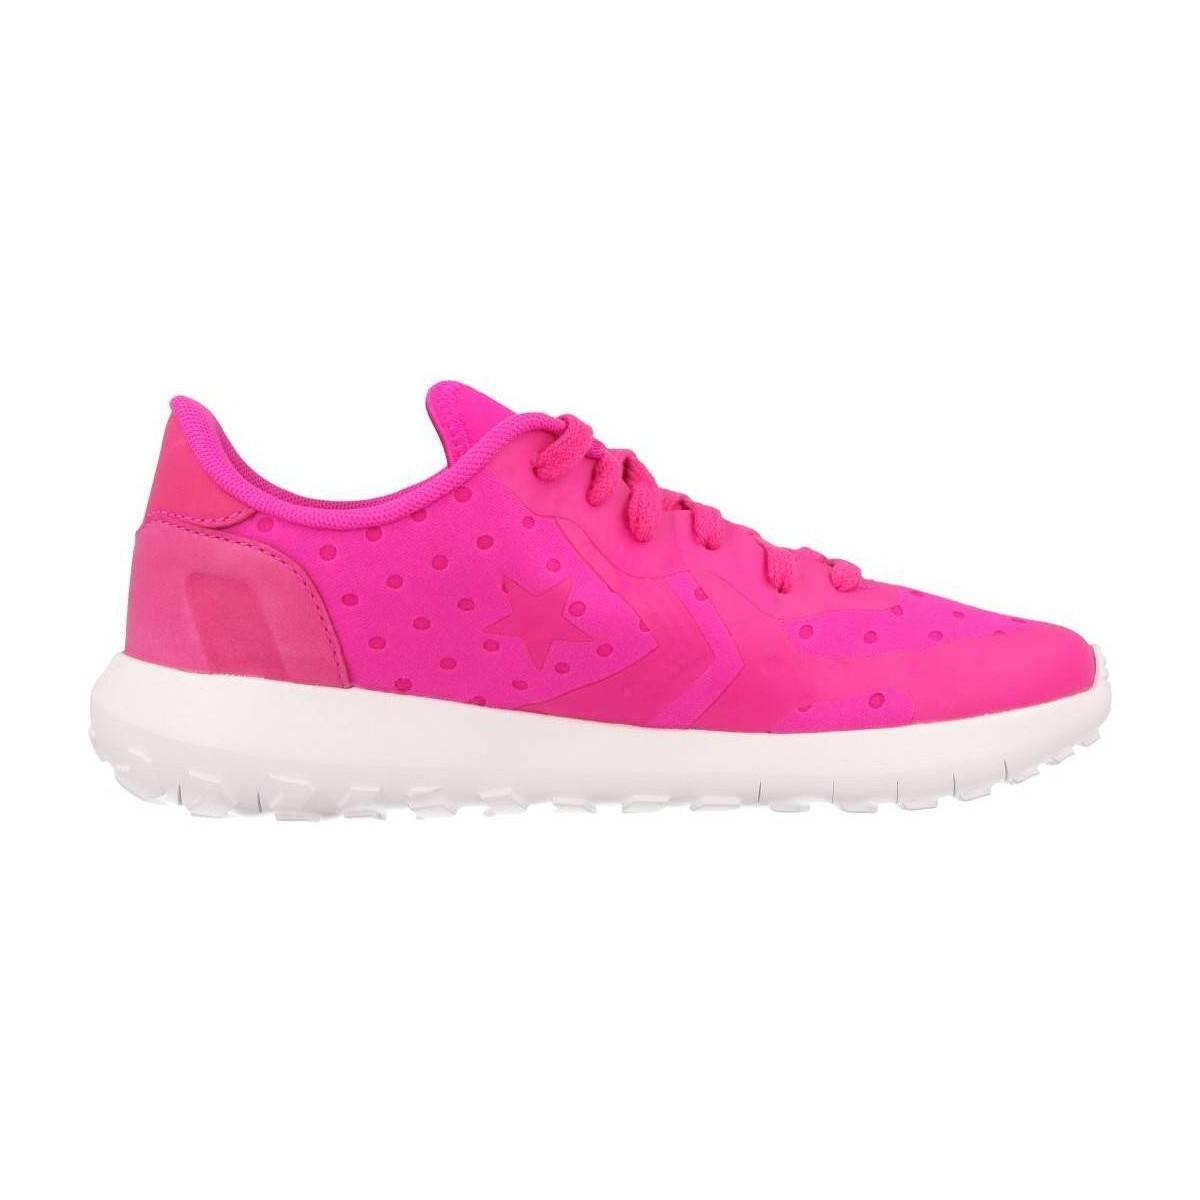 Converse Thunderbolt Ultra Ox Women s Shoes (trainers) In Pink in ... 7fc7cec15